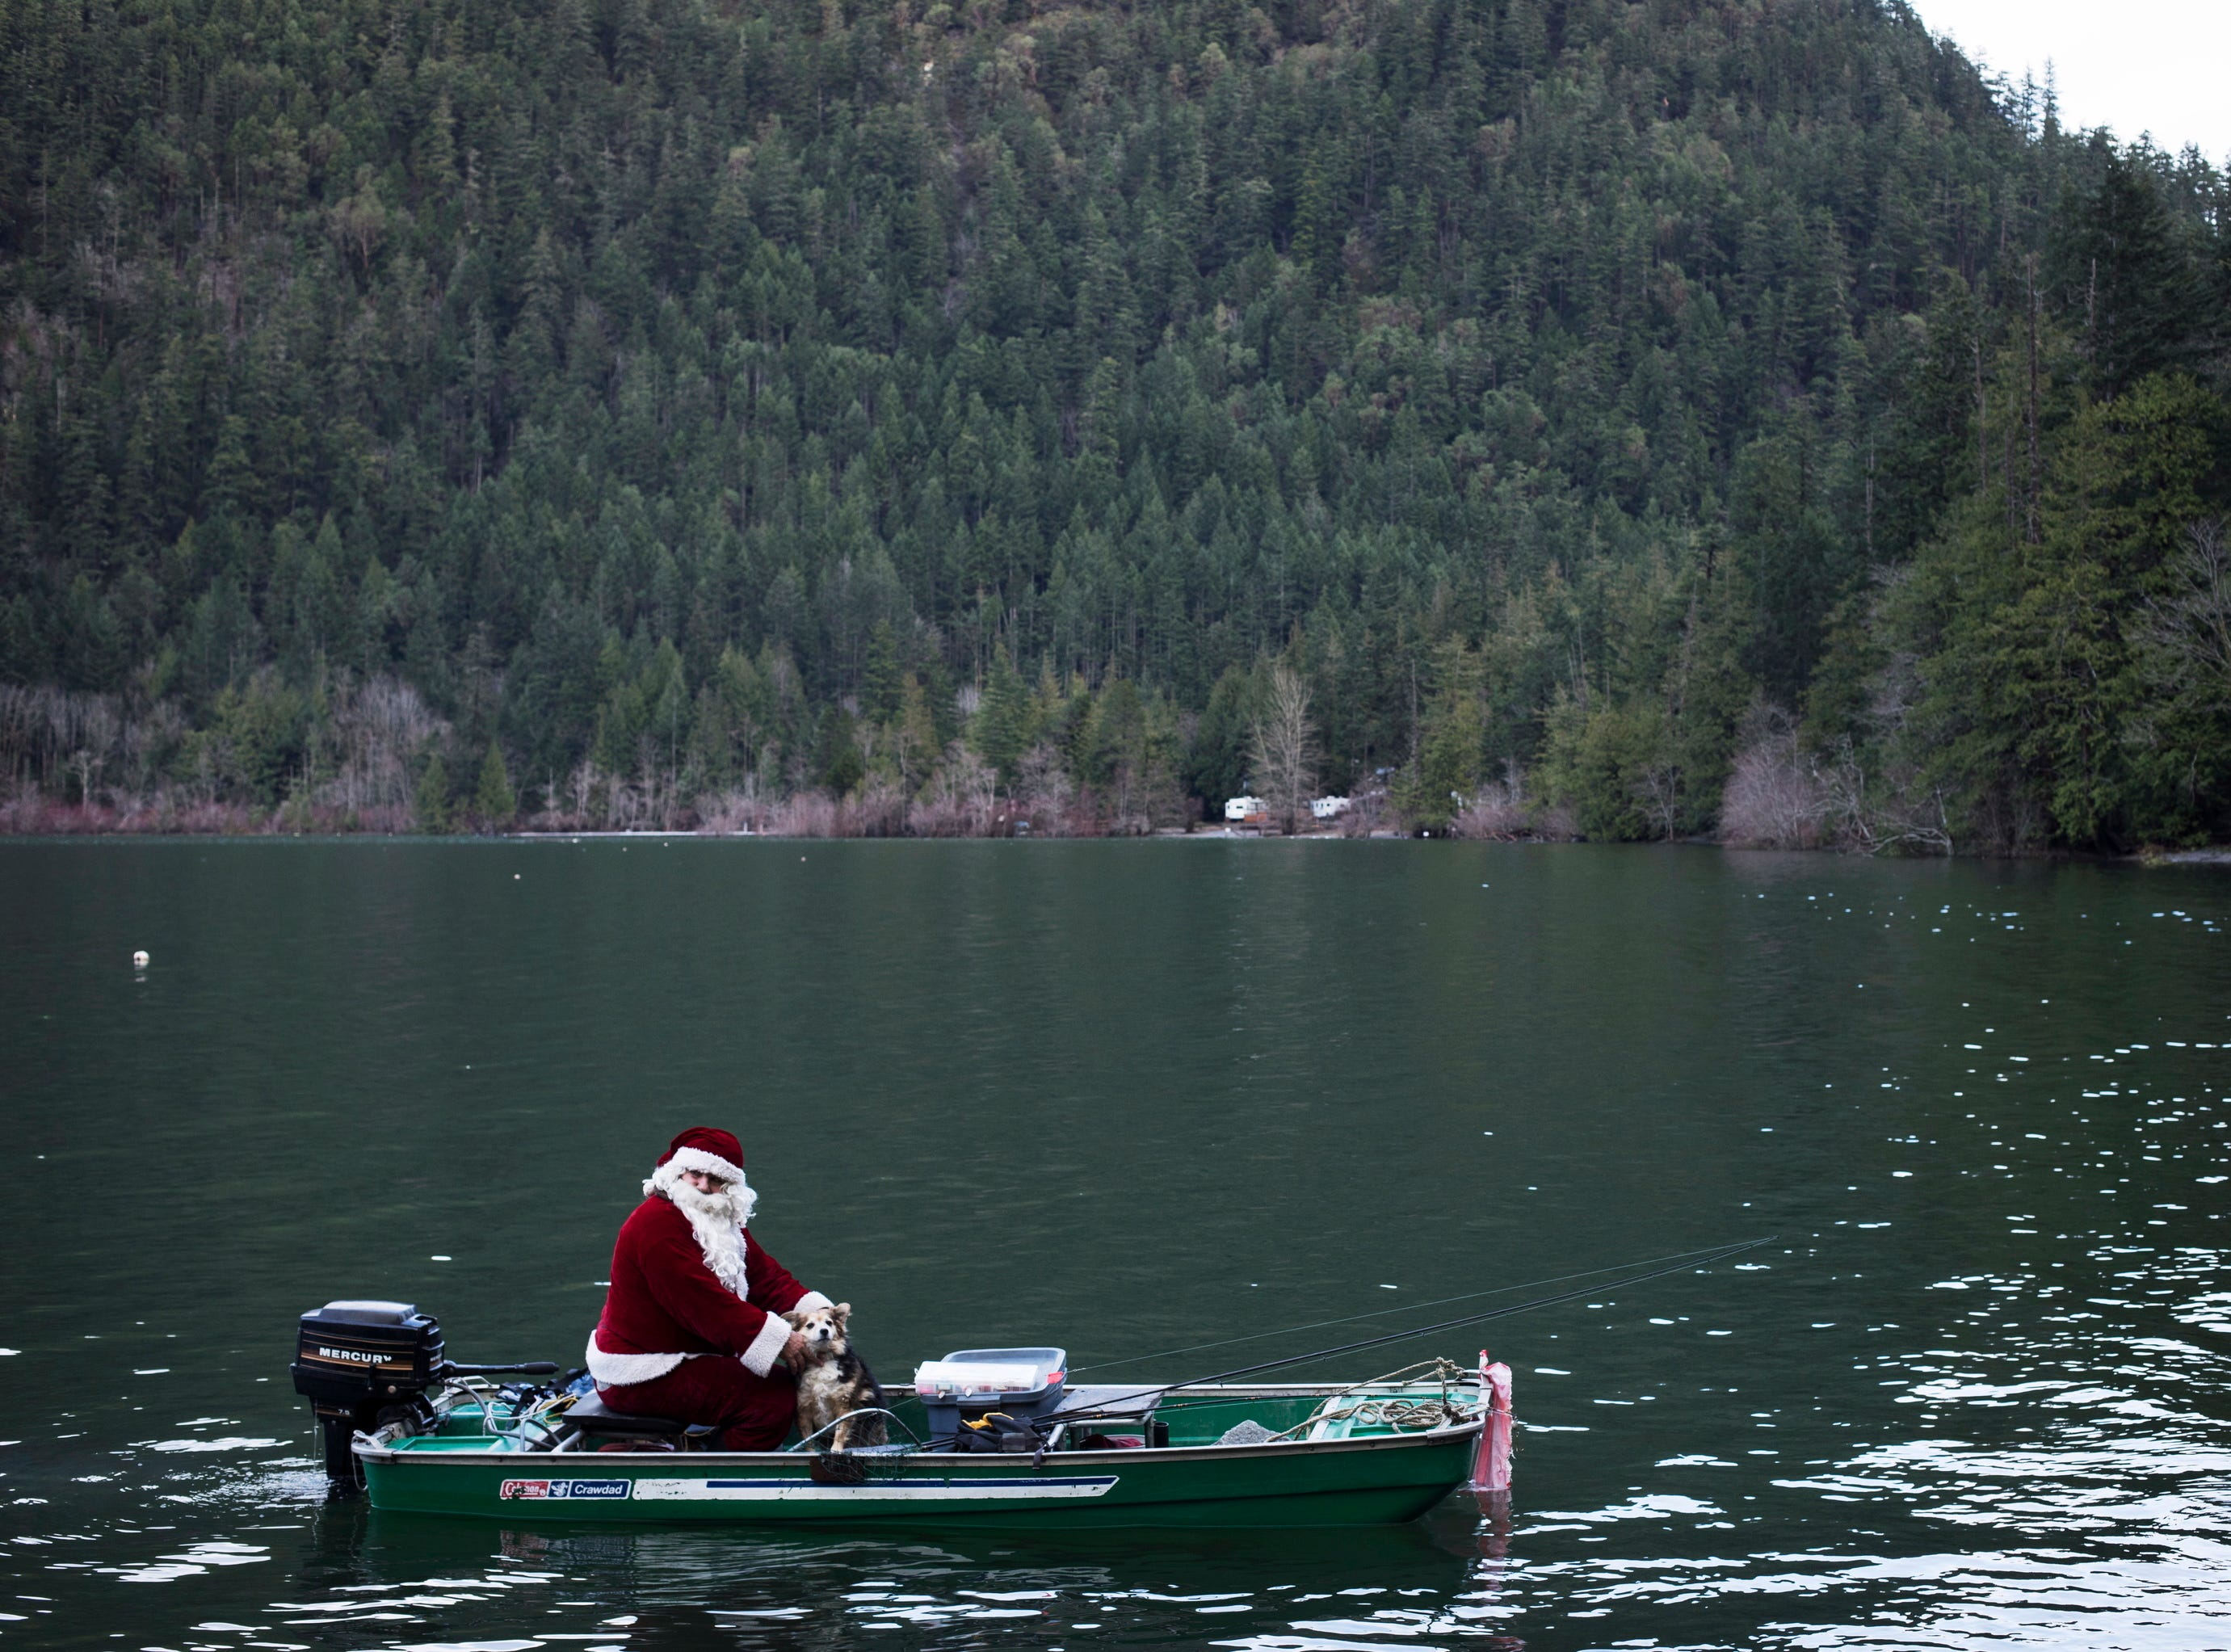 """Larvy Horvath, dressing up as Santa on Christmas Day for the past 15 years, rides a boat for fishing on Cameron Lake, near Port Alberni, British Columbia, Tuesday, Dec. 25, 2018. """"The kids like it when they go by,"""" he says, adding that the """"adults do too."""""""